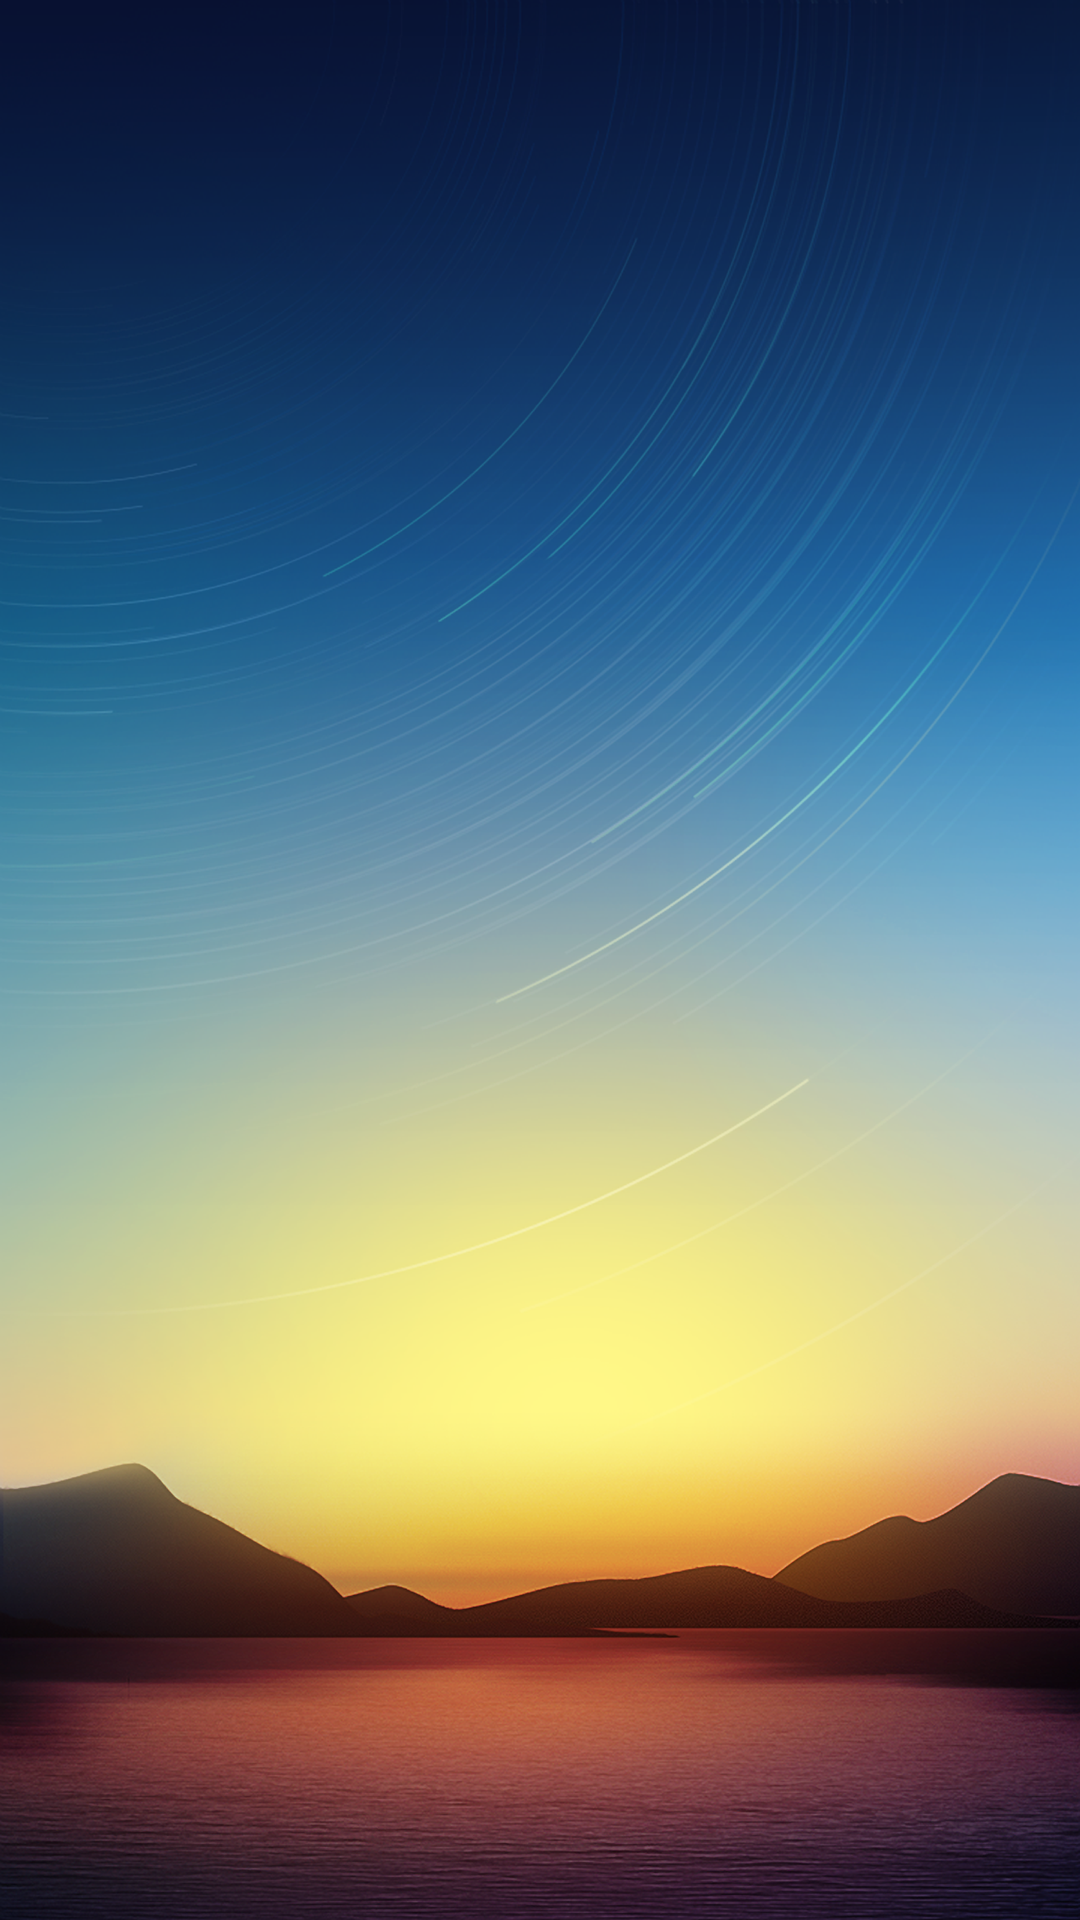 windows phone hd for mobile phone wallpapers 1080x1920 sunset 1080x1920